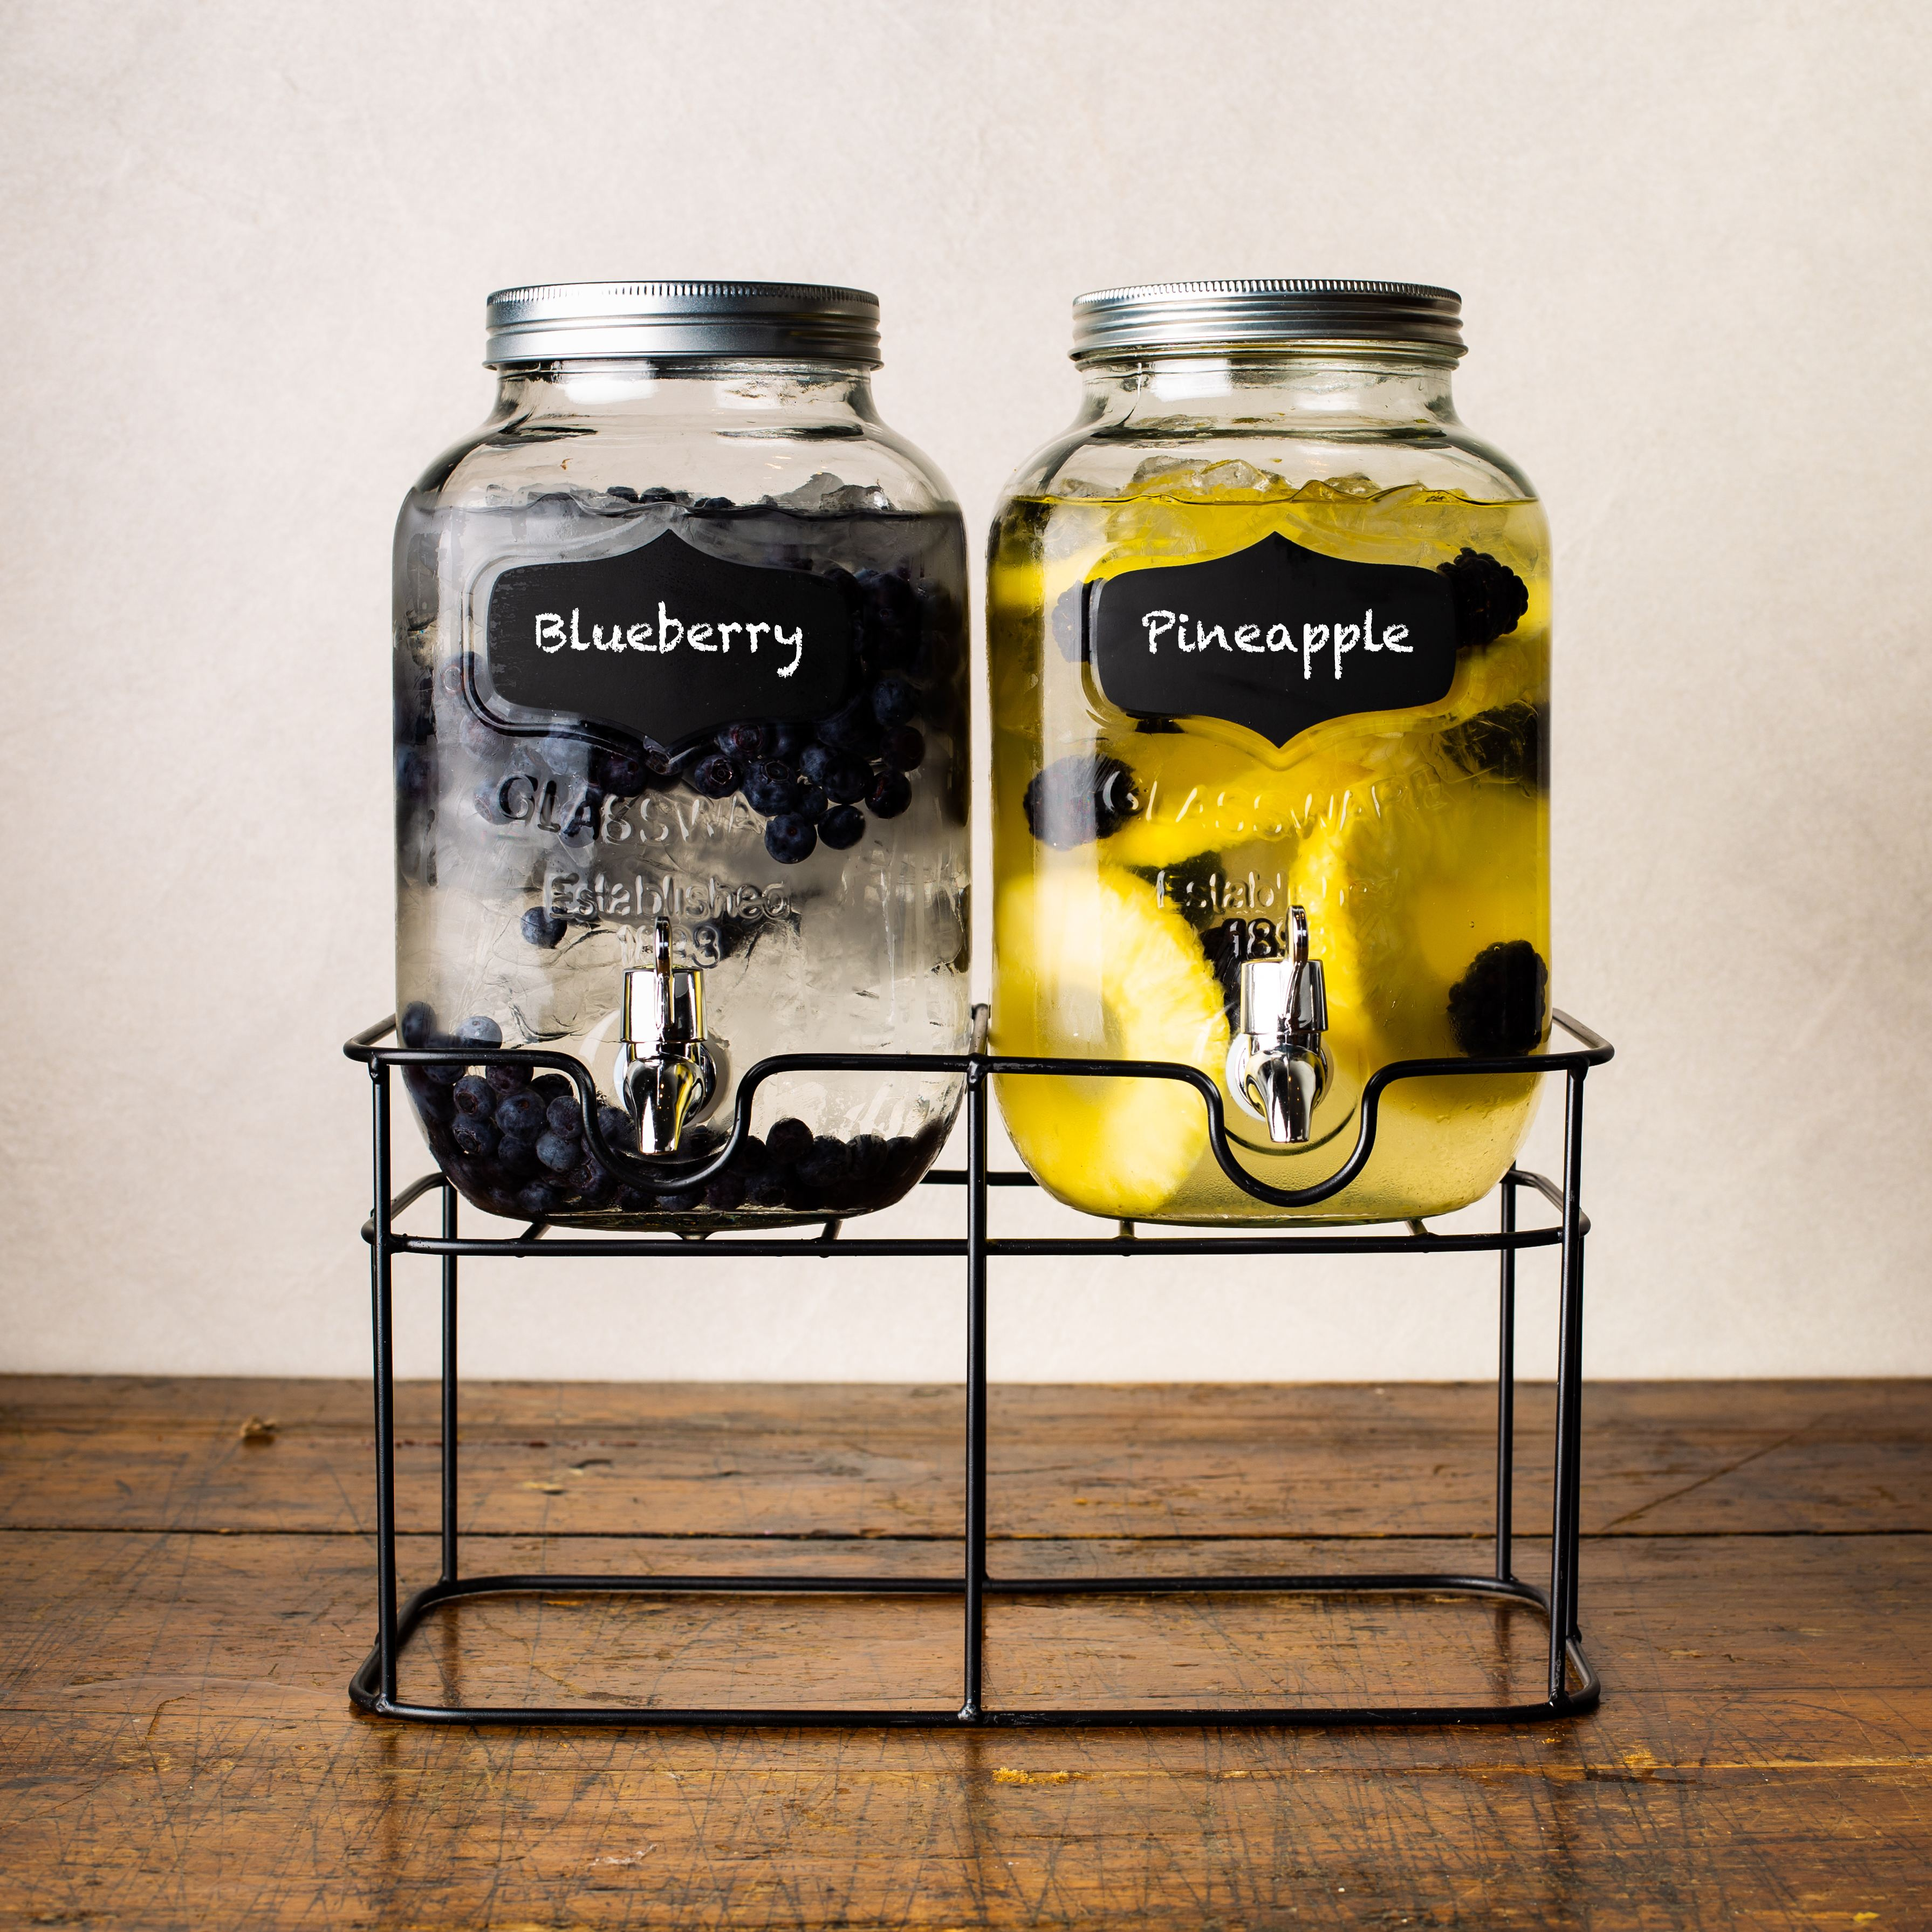 a set of two glass beverage dispensers with chalkboard labels on a stand, one dispenser filled with water, ice, and blueberries, the other filled with water, pineapple, and blackberries